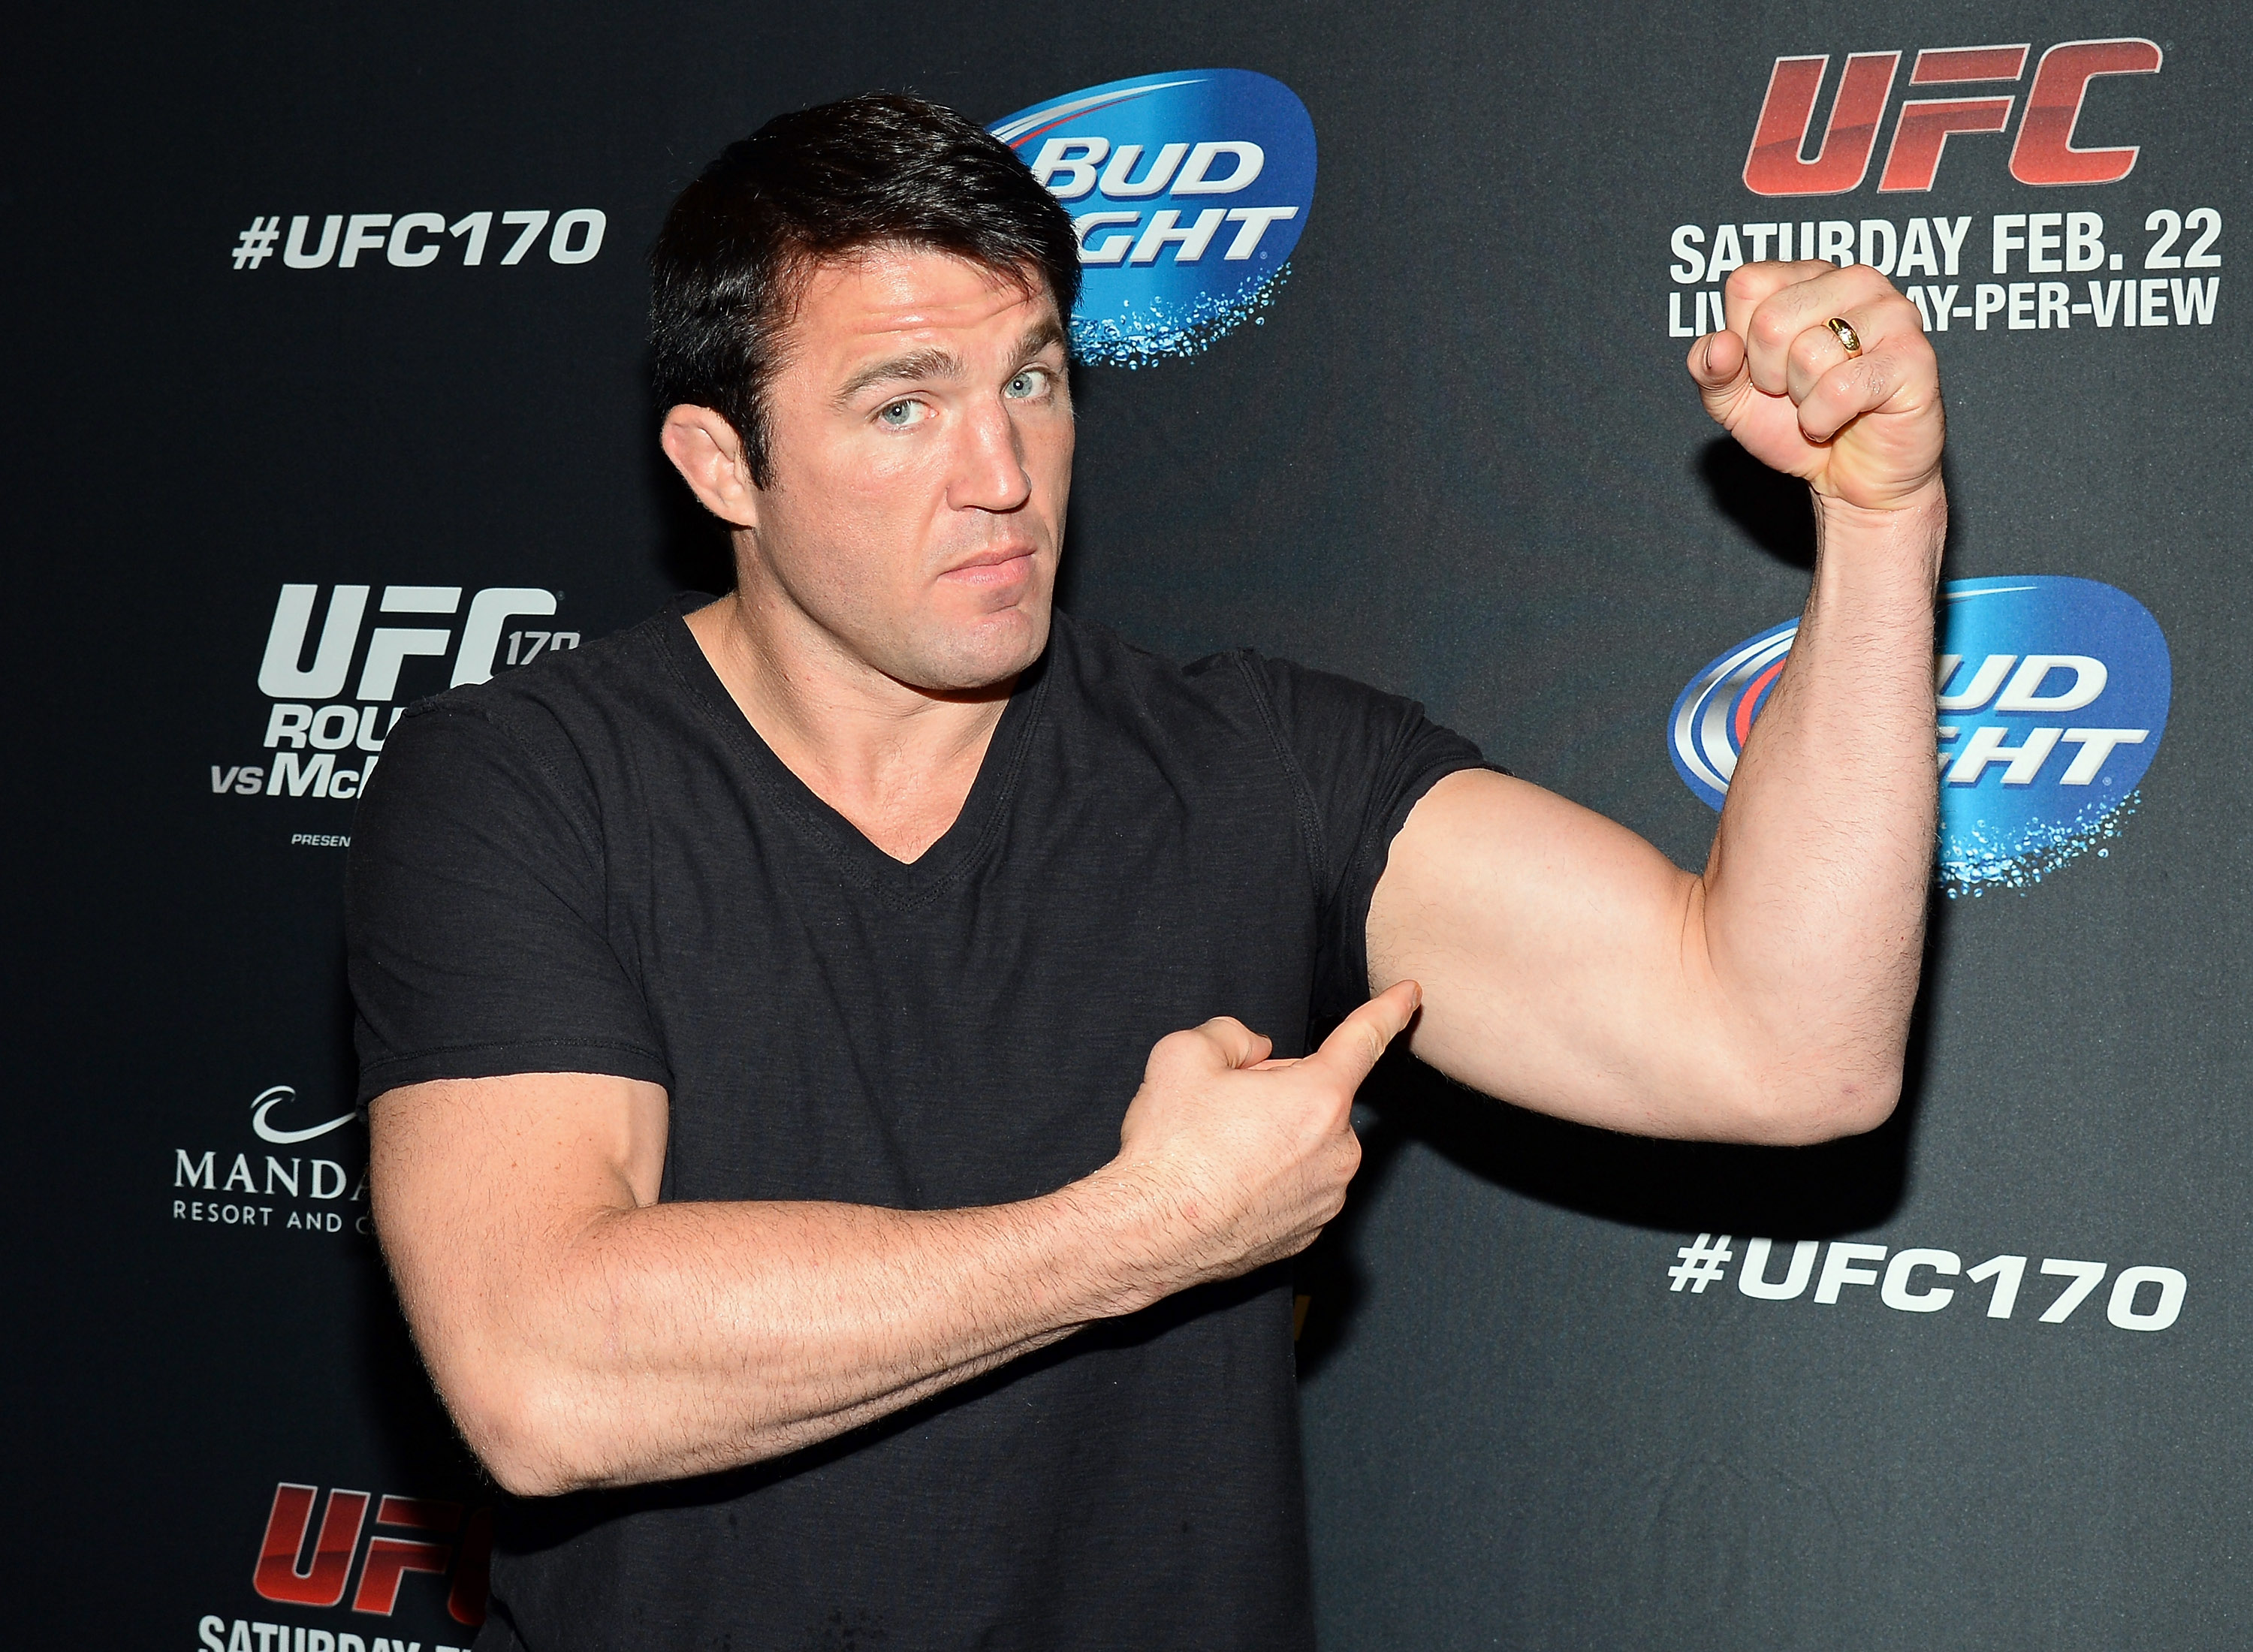 MMA fighter Chael Sonnen